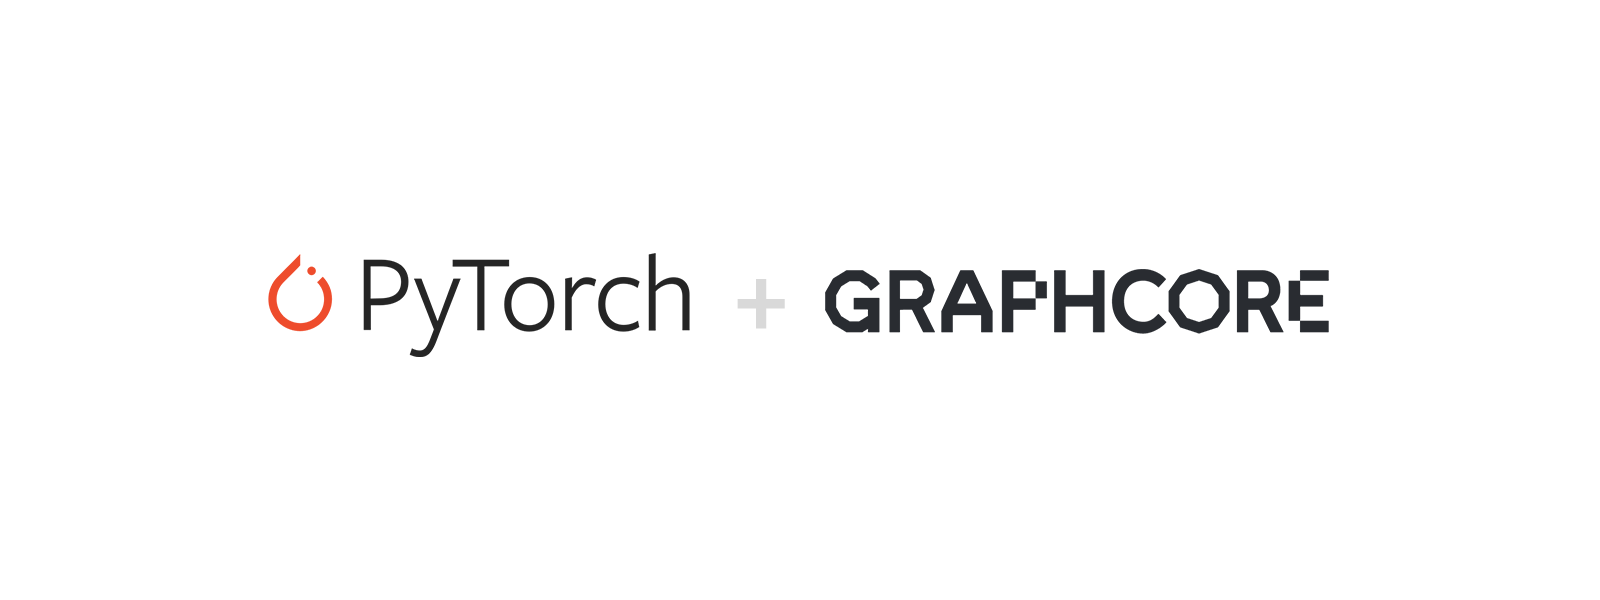 Introducing PyTorch for the IPU